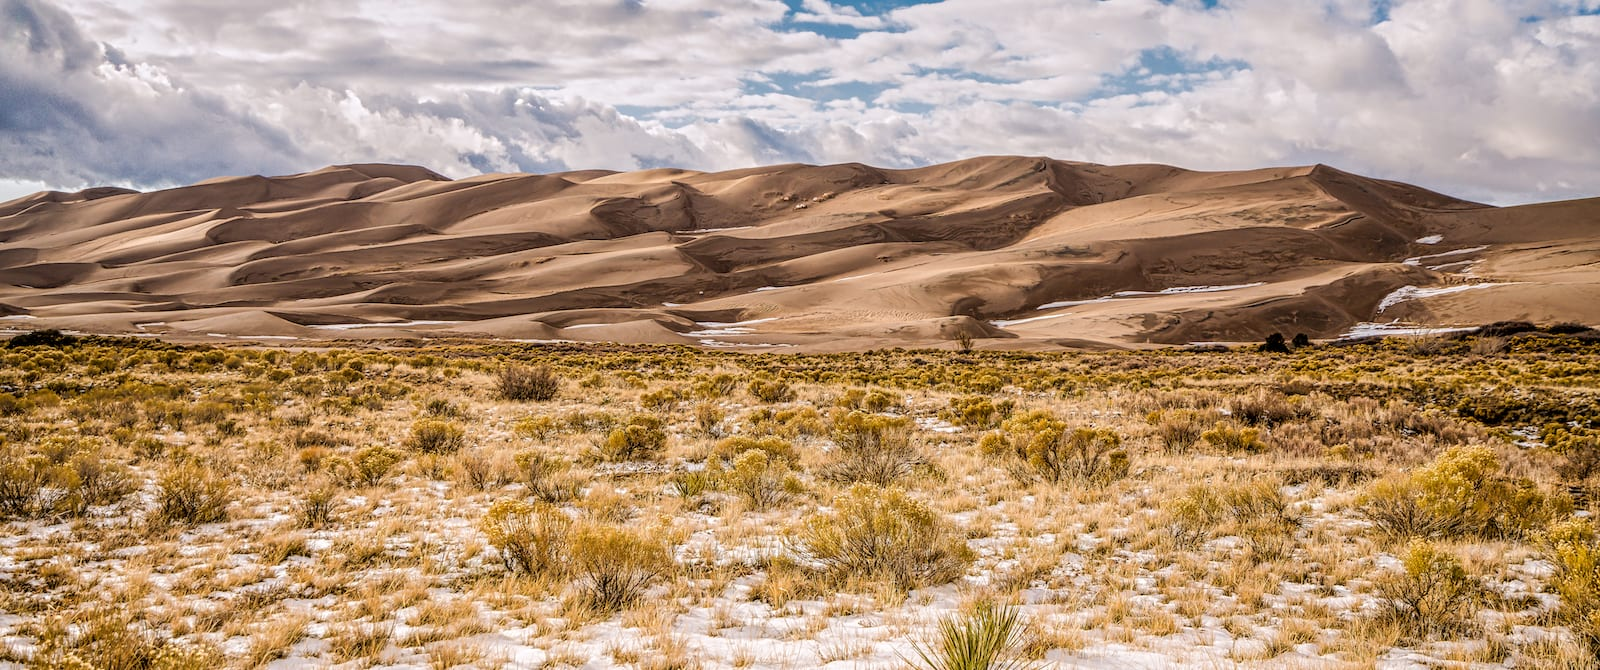 Great Sand Dunes NP & Preserve, CO